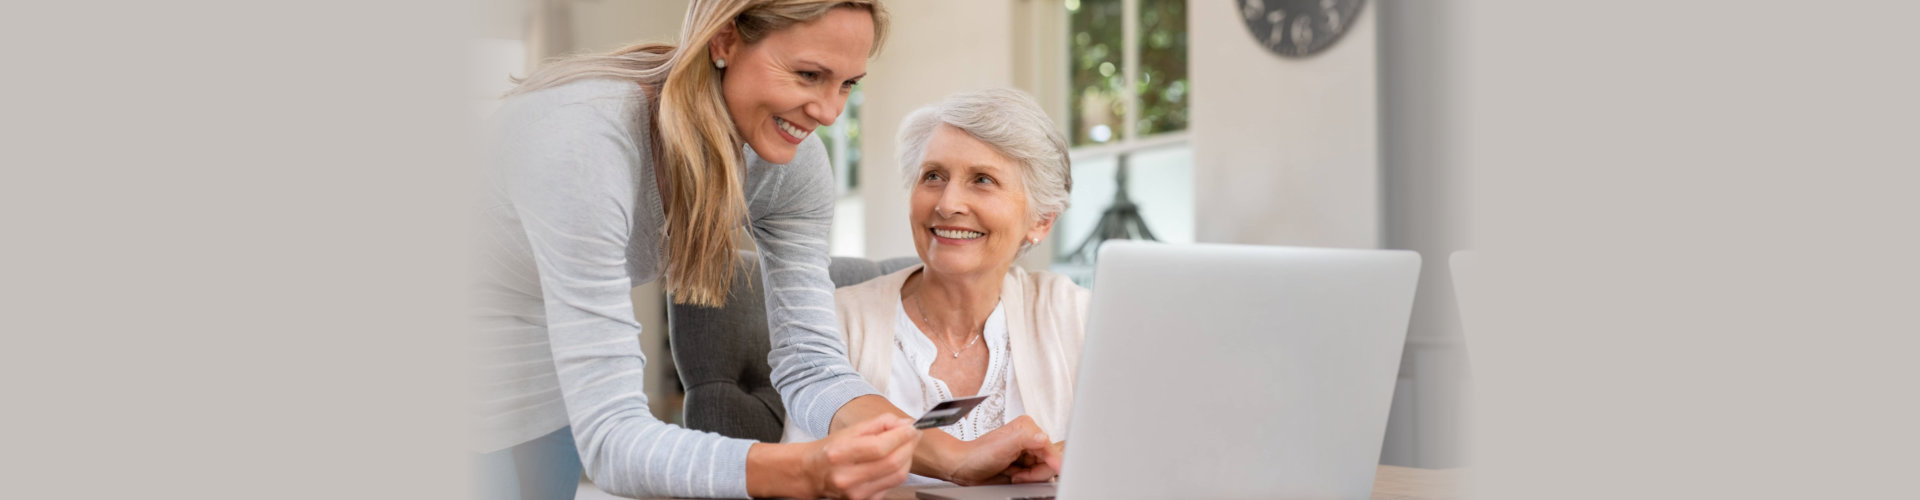 mother and daughter buying online.